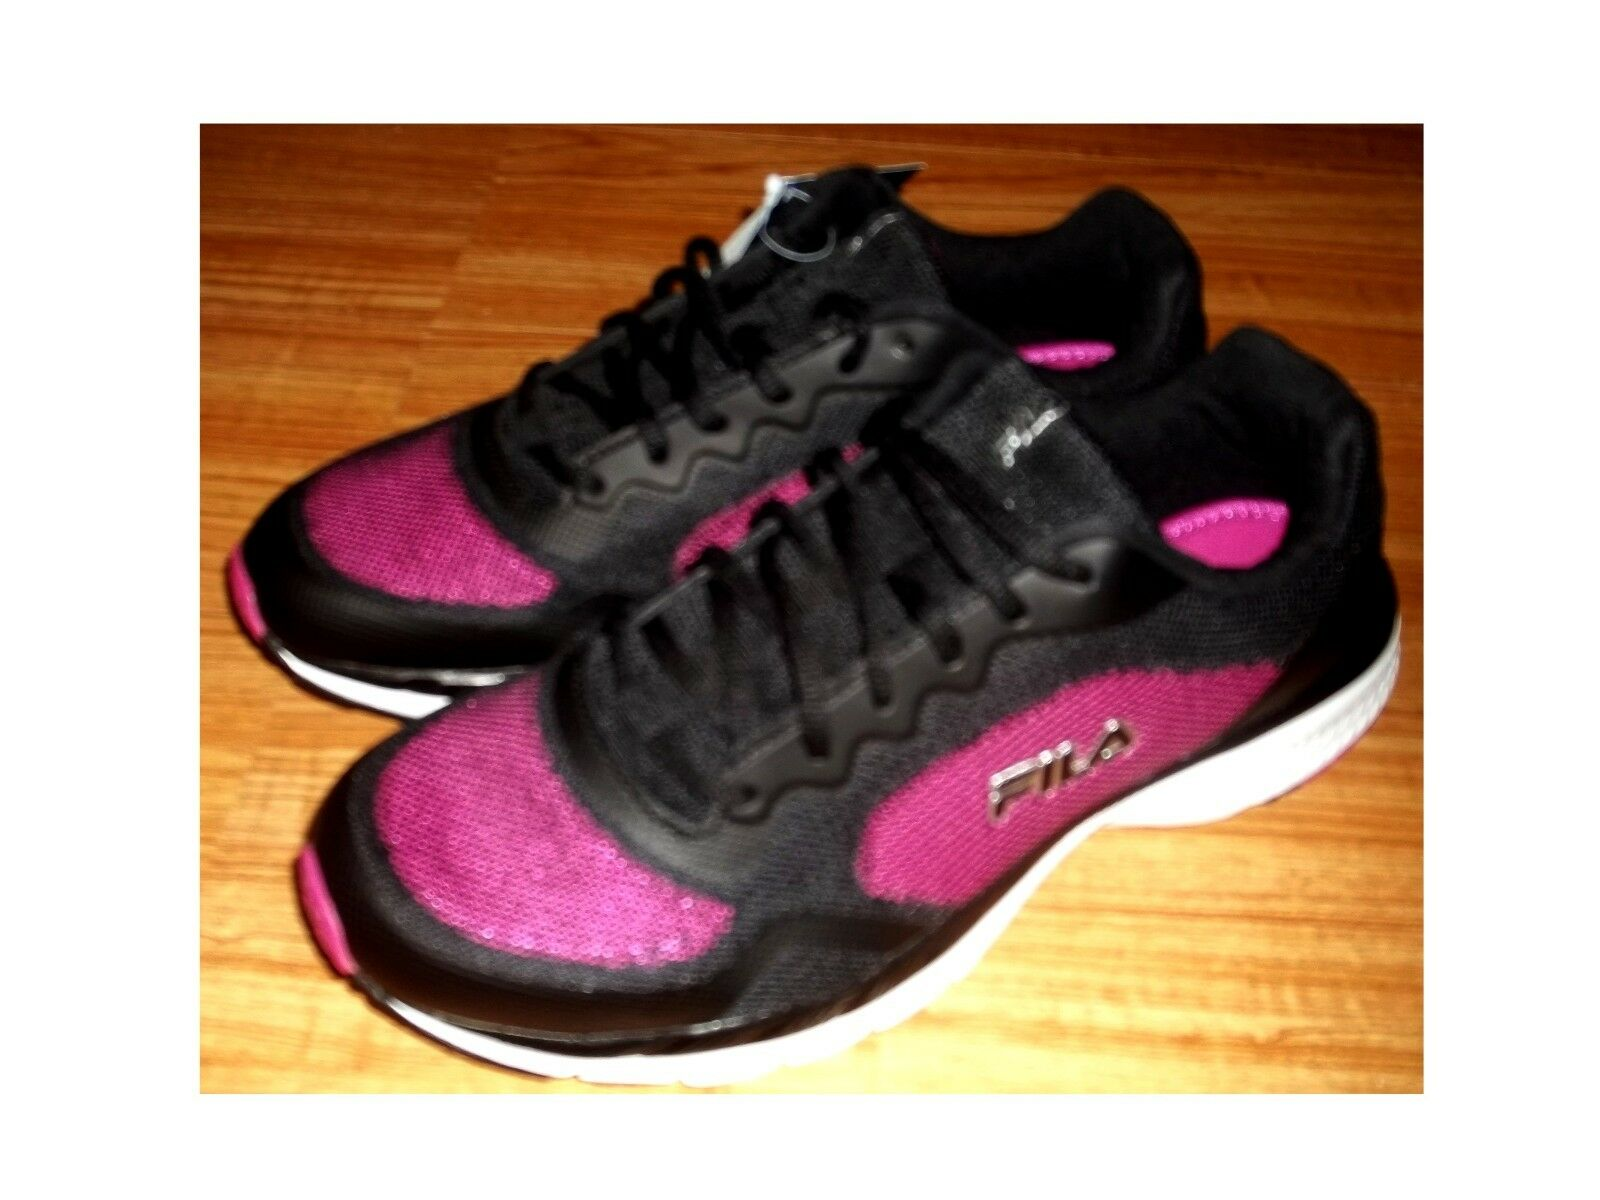 NEW FILA MEMORY SHOWCASE 3 Shoes Sz 11  ***FREESHIPPING*** Special limited time